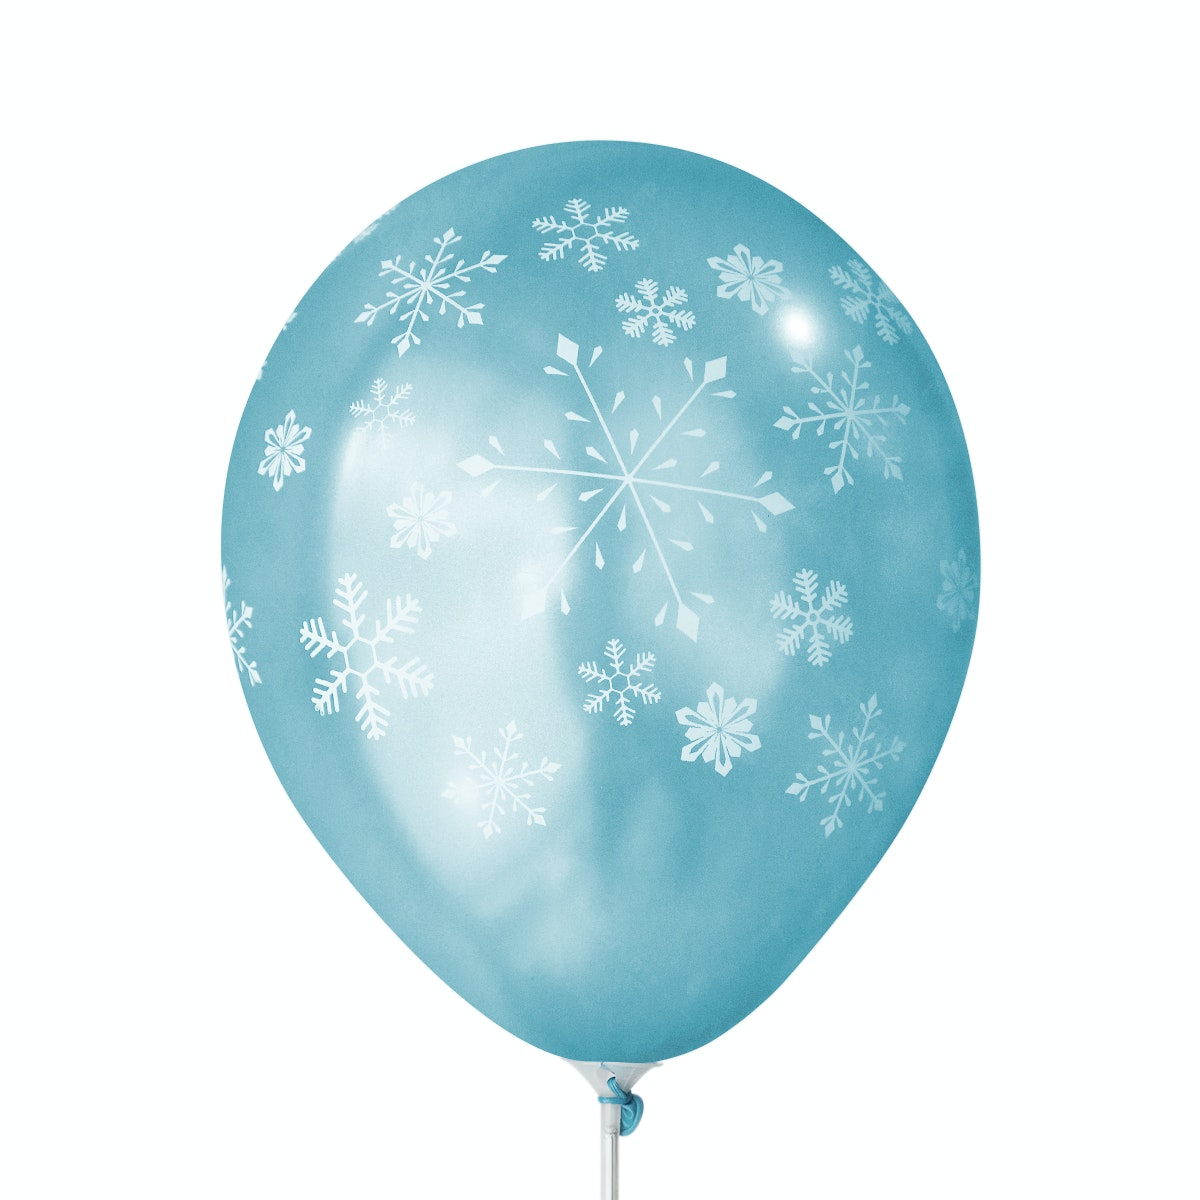 Adalima Balloon Balon Latex Snow Flakes Light Blue QQ